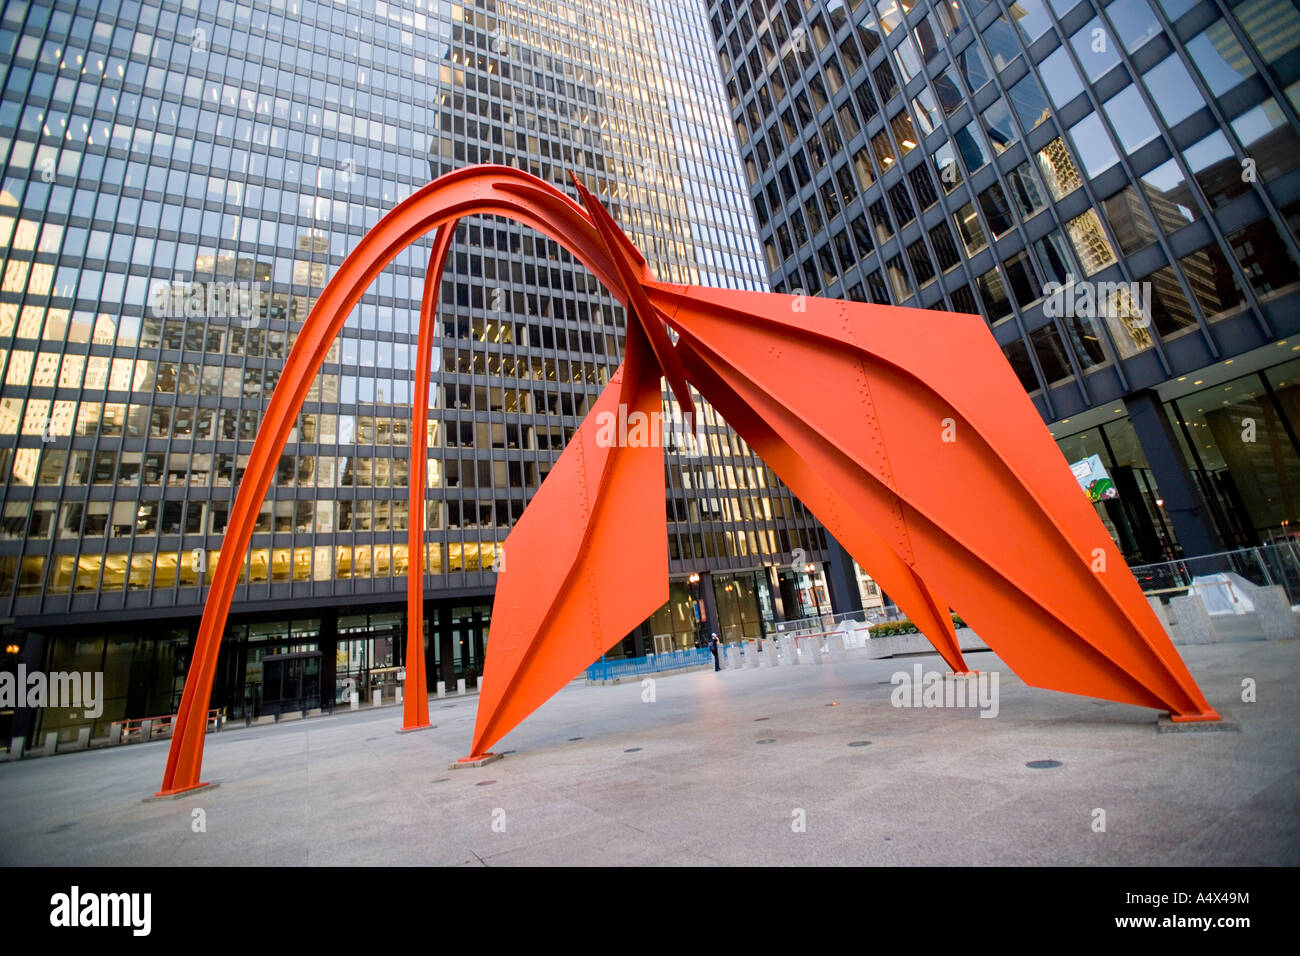 The Flamingo sculpture by Alexander Calder in Federal Center Plaza in Chicago Illinois - Stock Image